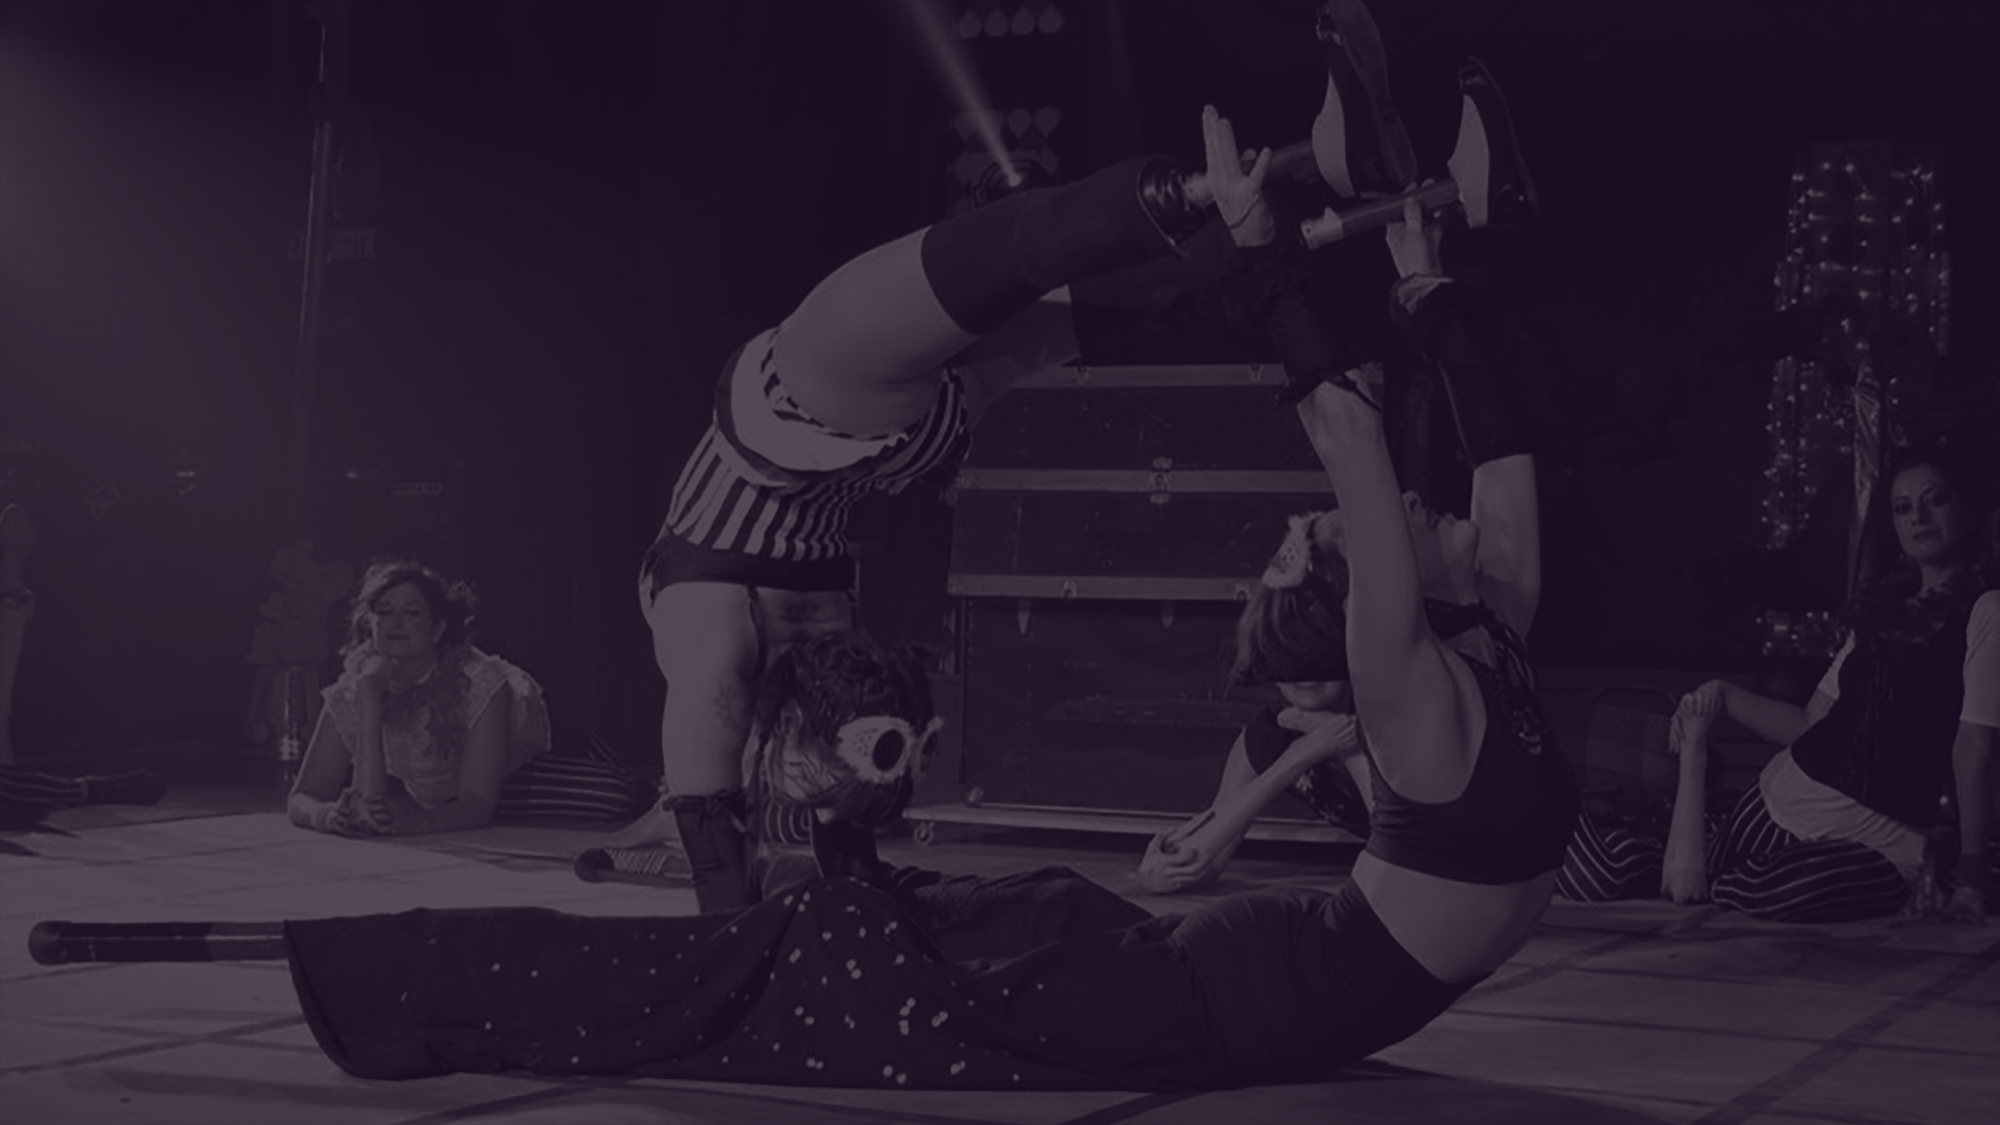 Black and white photo of Erin and Vanessa doing an acrobatic balance together that involves an arched handstand and an arch on the floor, with hands and prosthetic legs connected. The shape makes them look like a circle. There are people in the background making other shapes and holding plastic feet. Photo by Gilles Gelinas. Hospice Quinte Gala 2017. Lighting by Definitive Entertainment Productions.